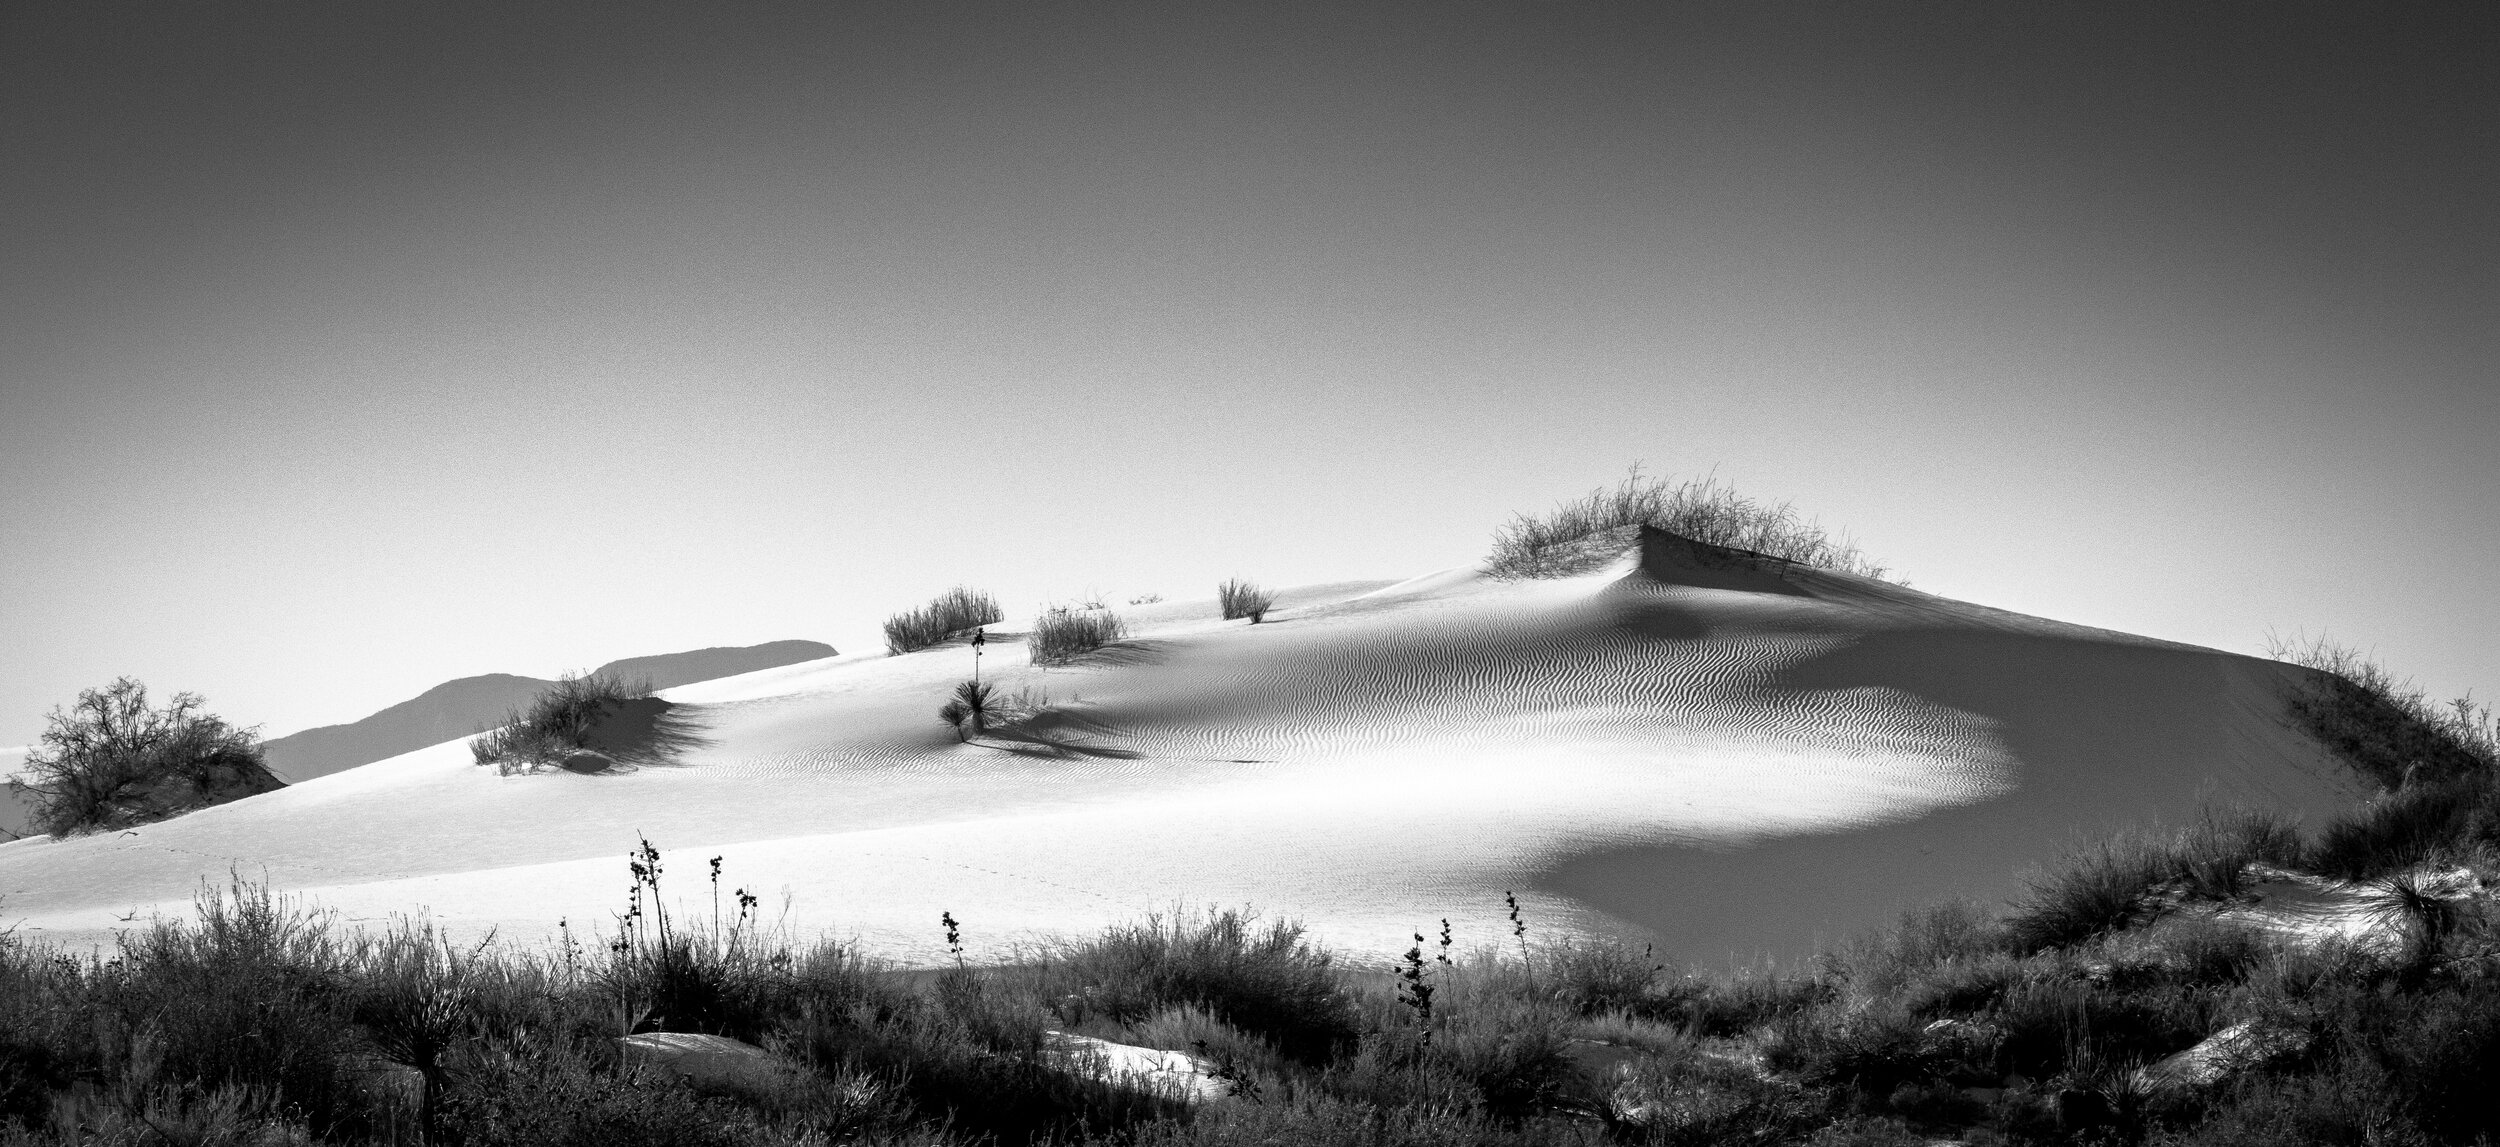 white sands migrating dune 2.JPG